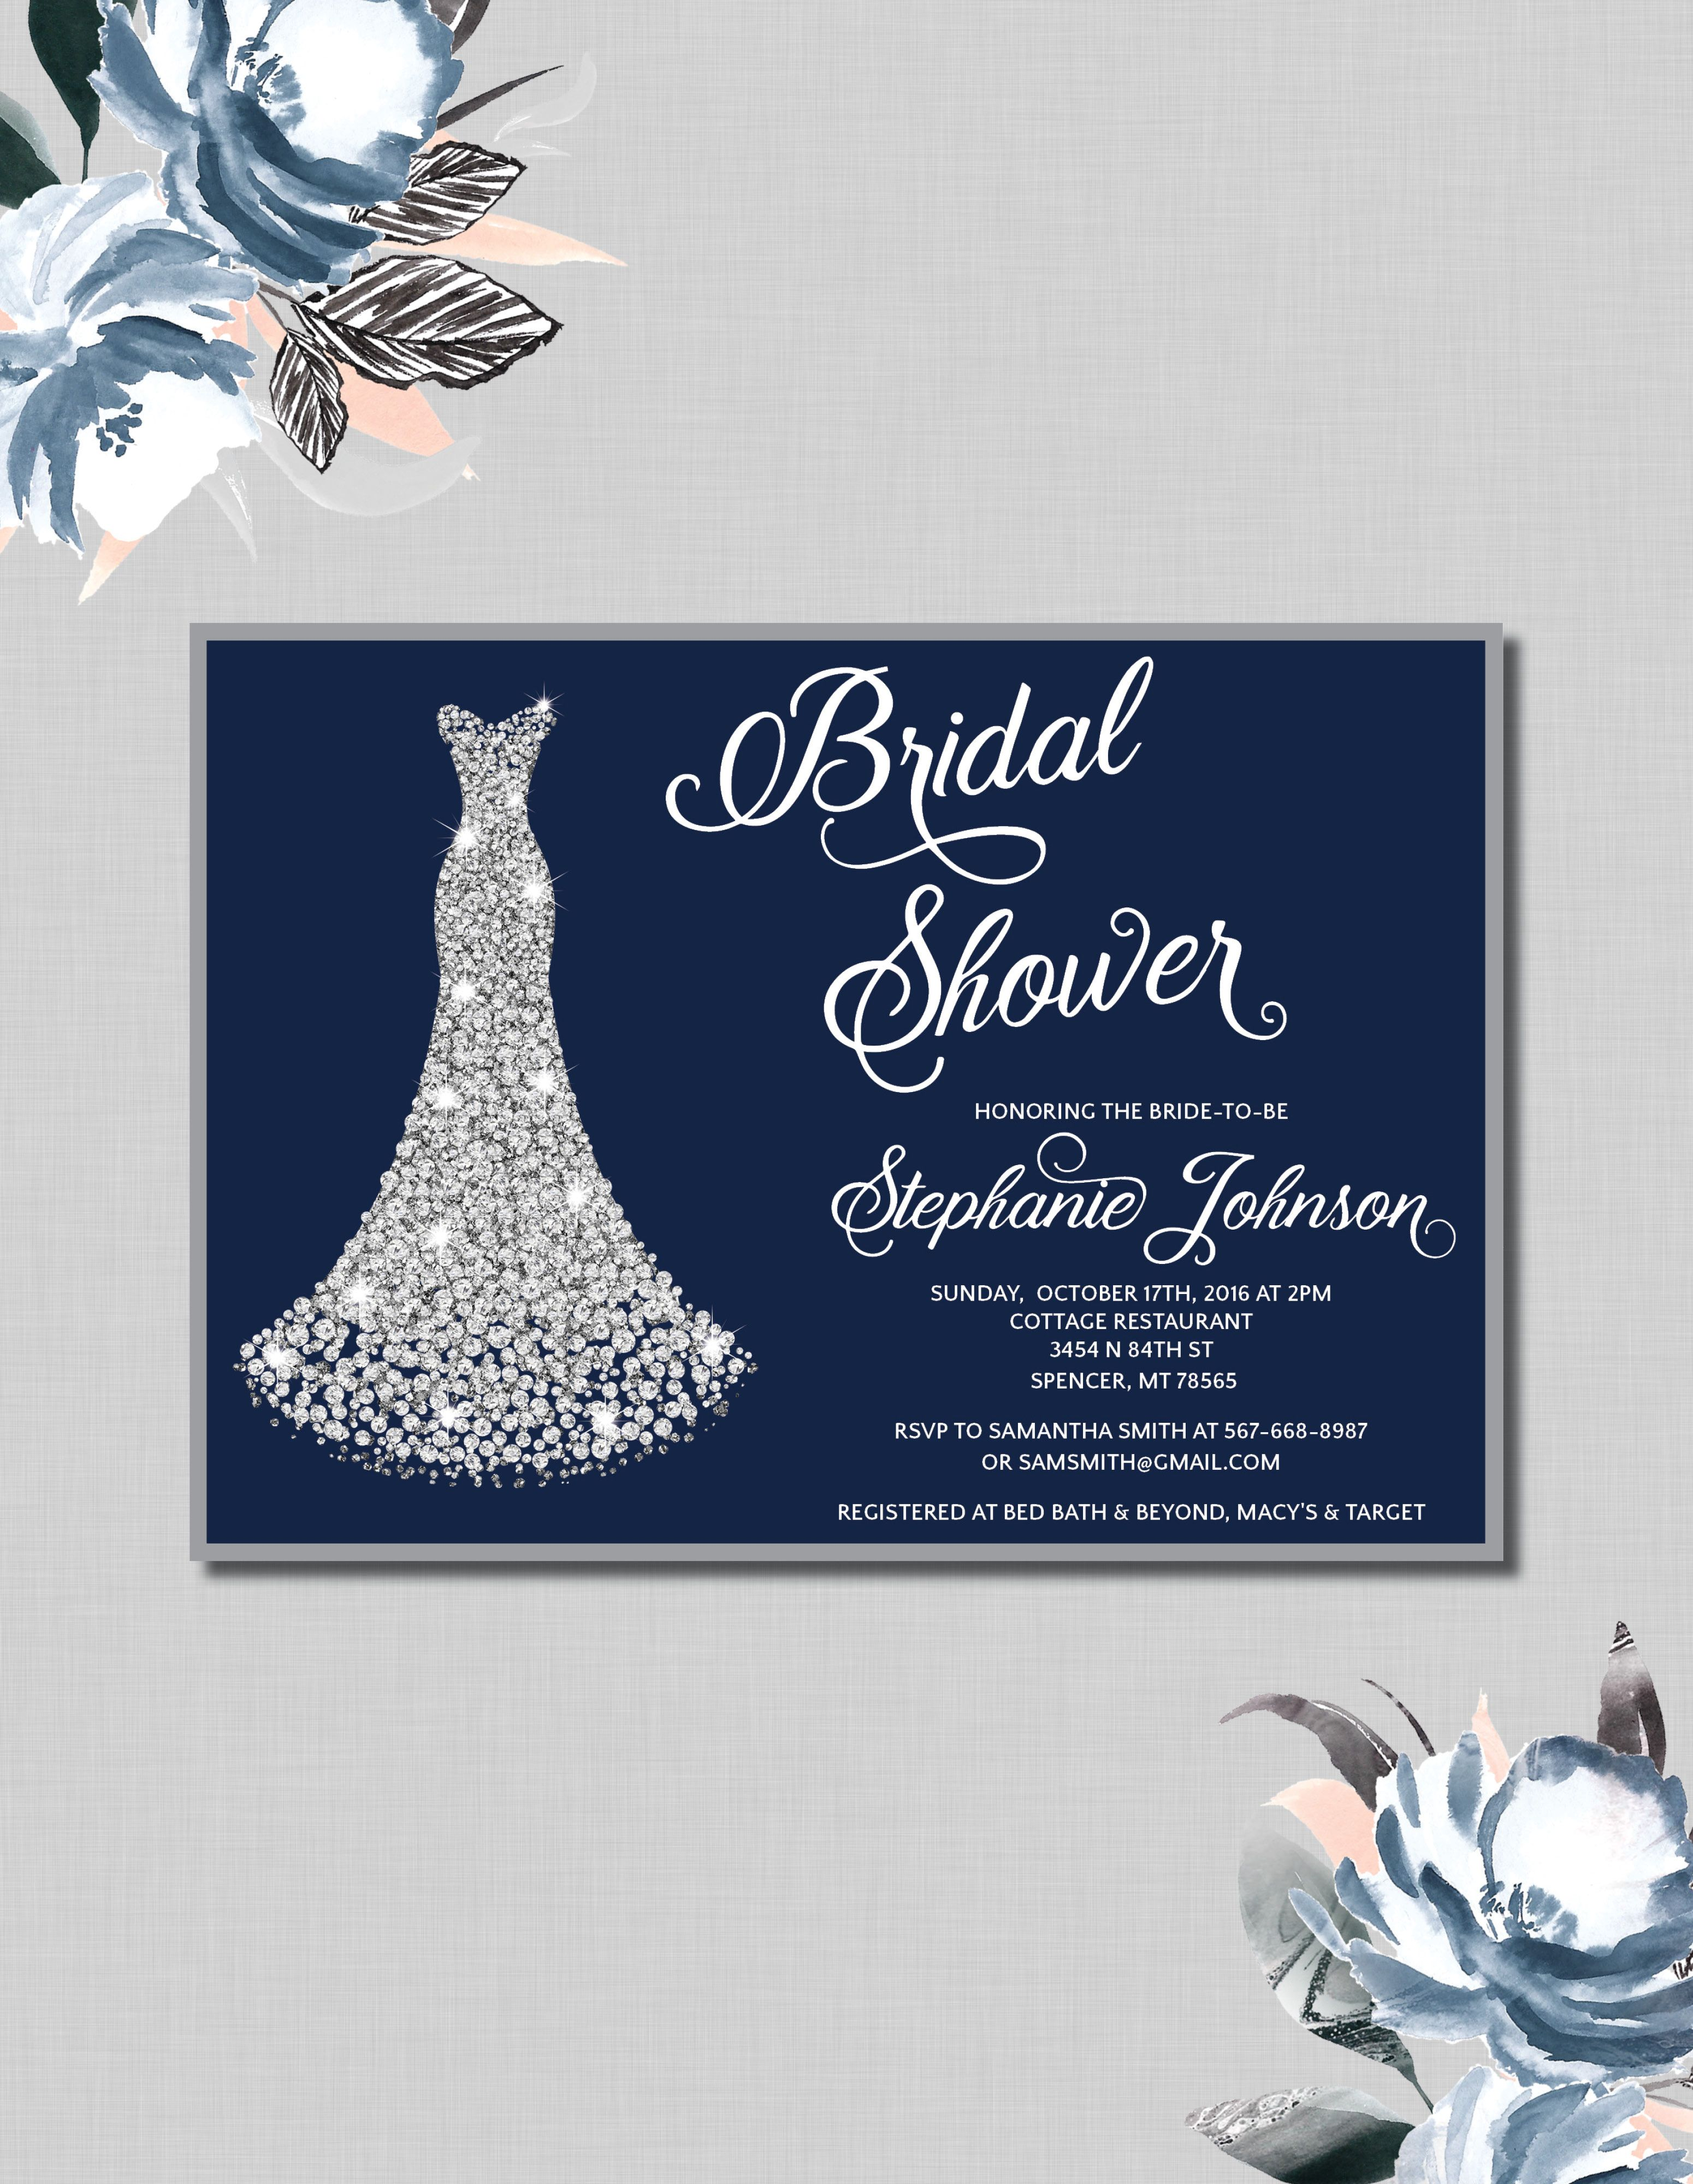 Navy And Silver Bridal Shower Invitation With A Diamond Wedding Gown Choose To Print On Your Own Or Have Them Printed For You Soo Pretty